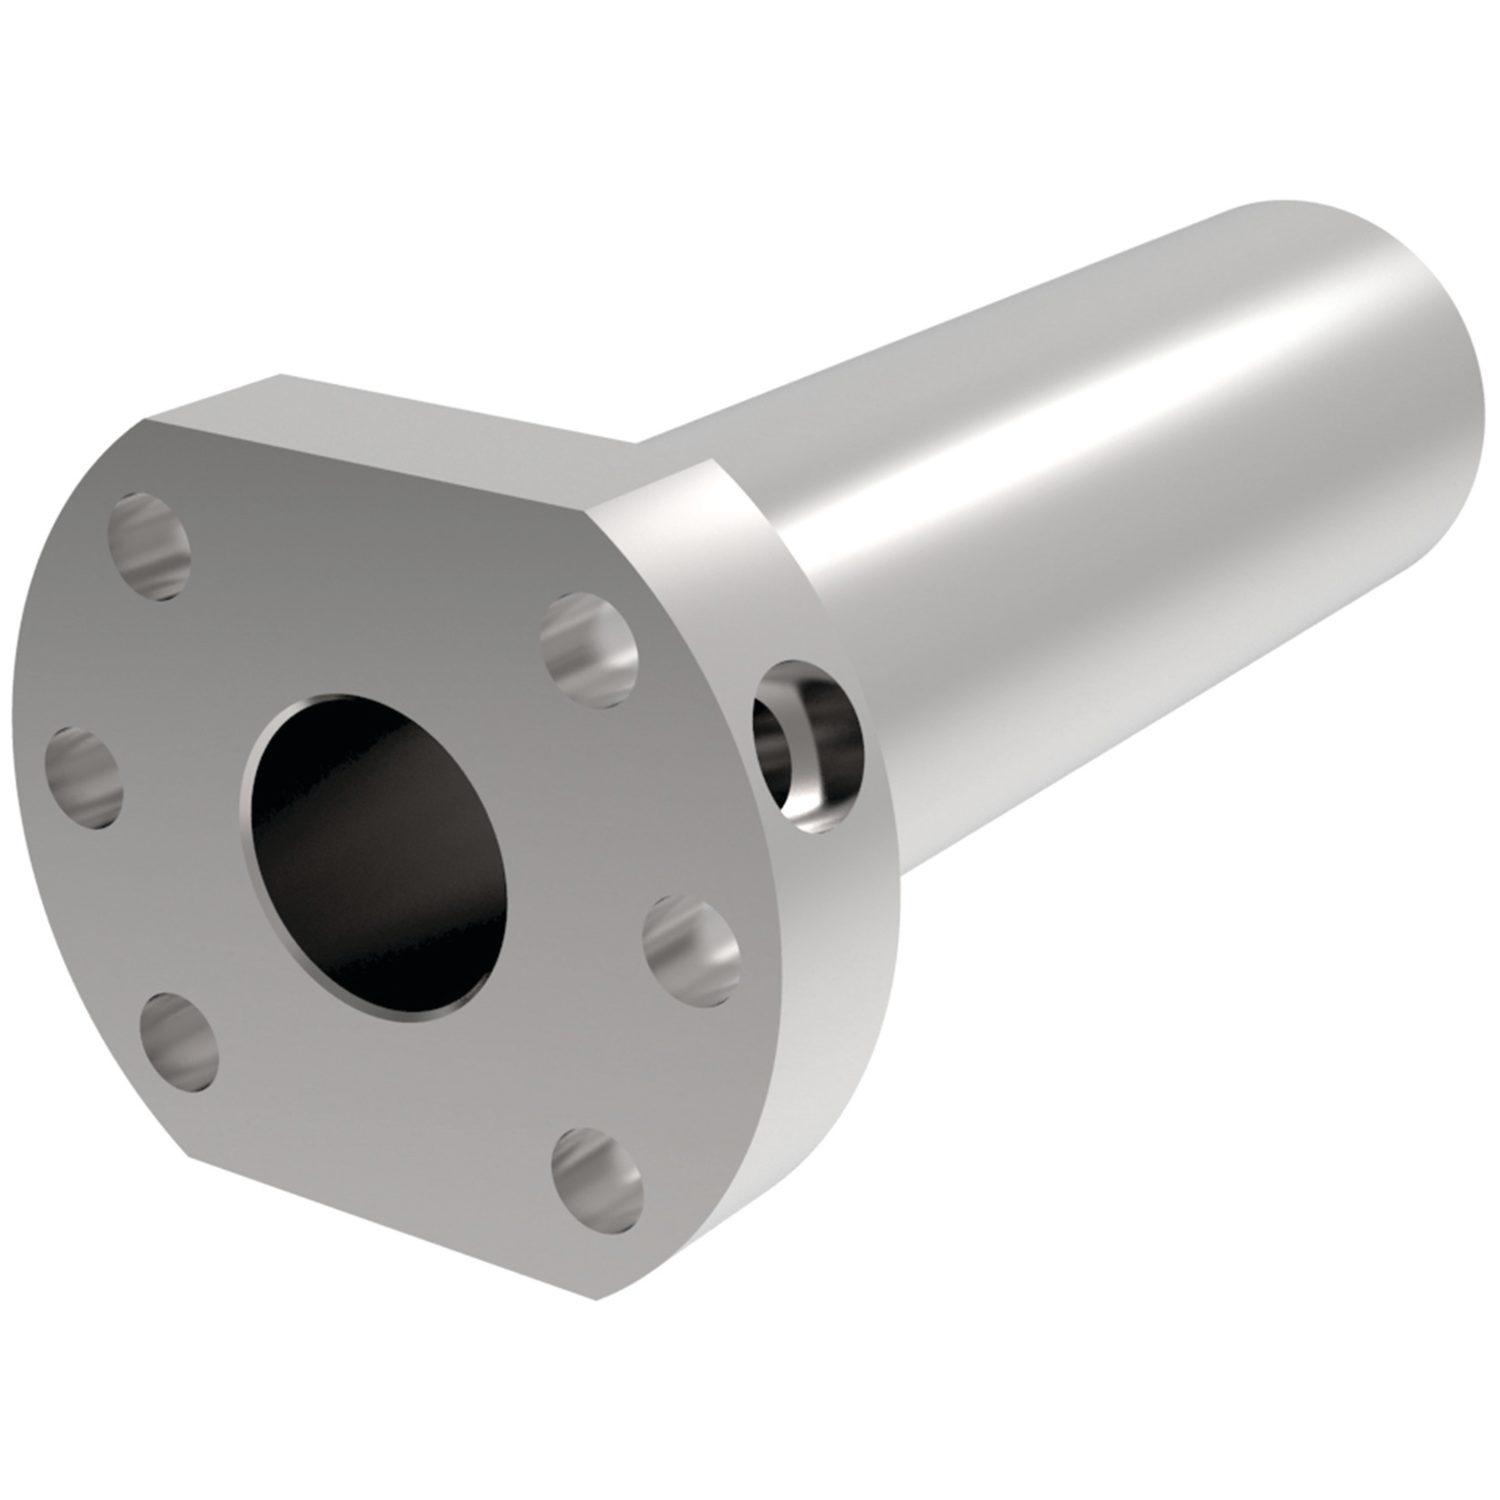 L1381 Flanged Double Ball Nuts